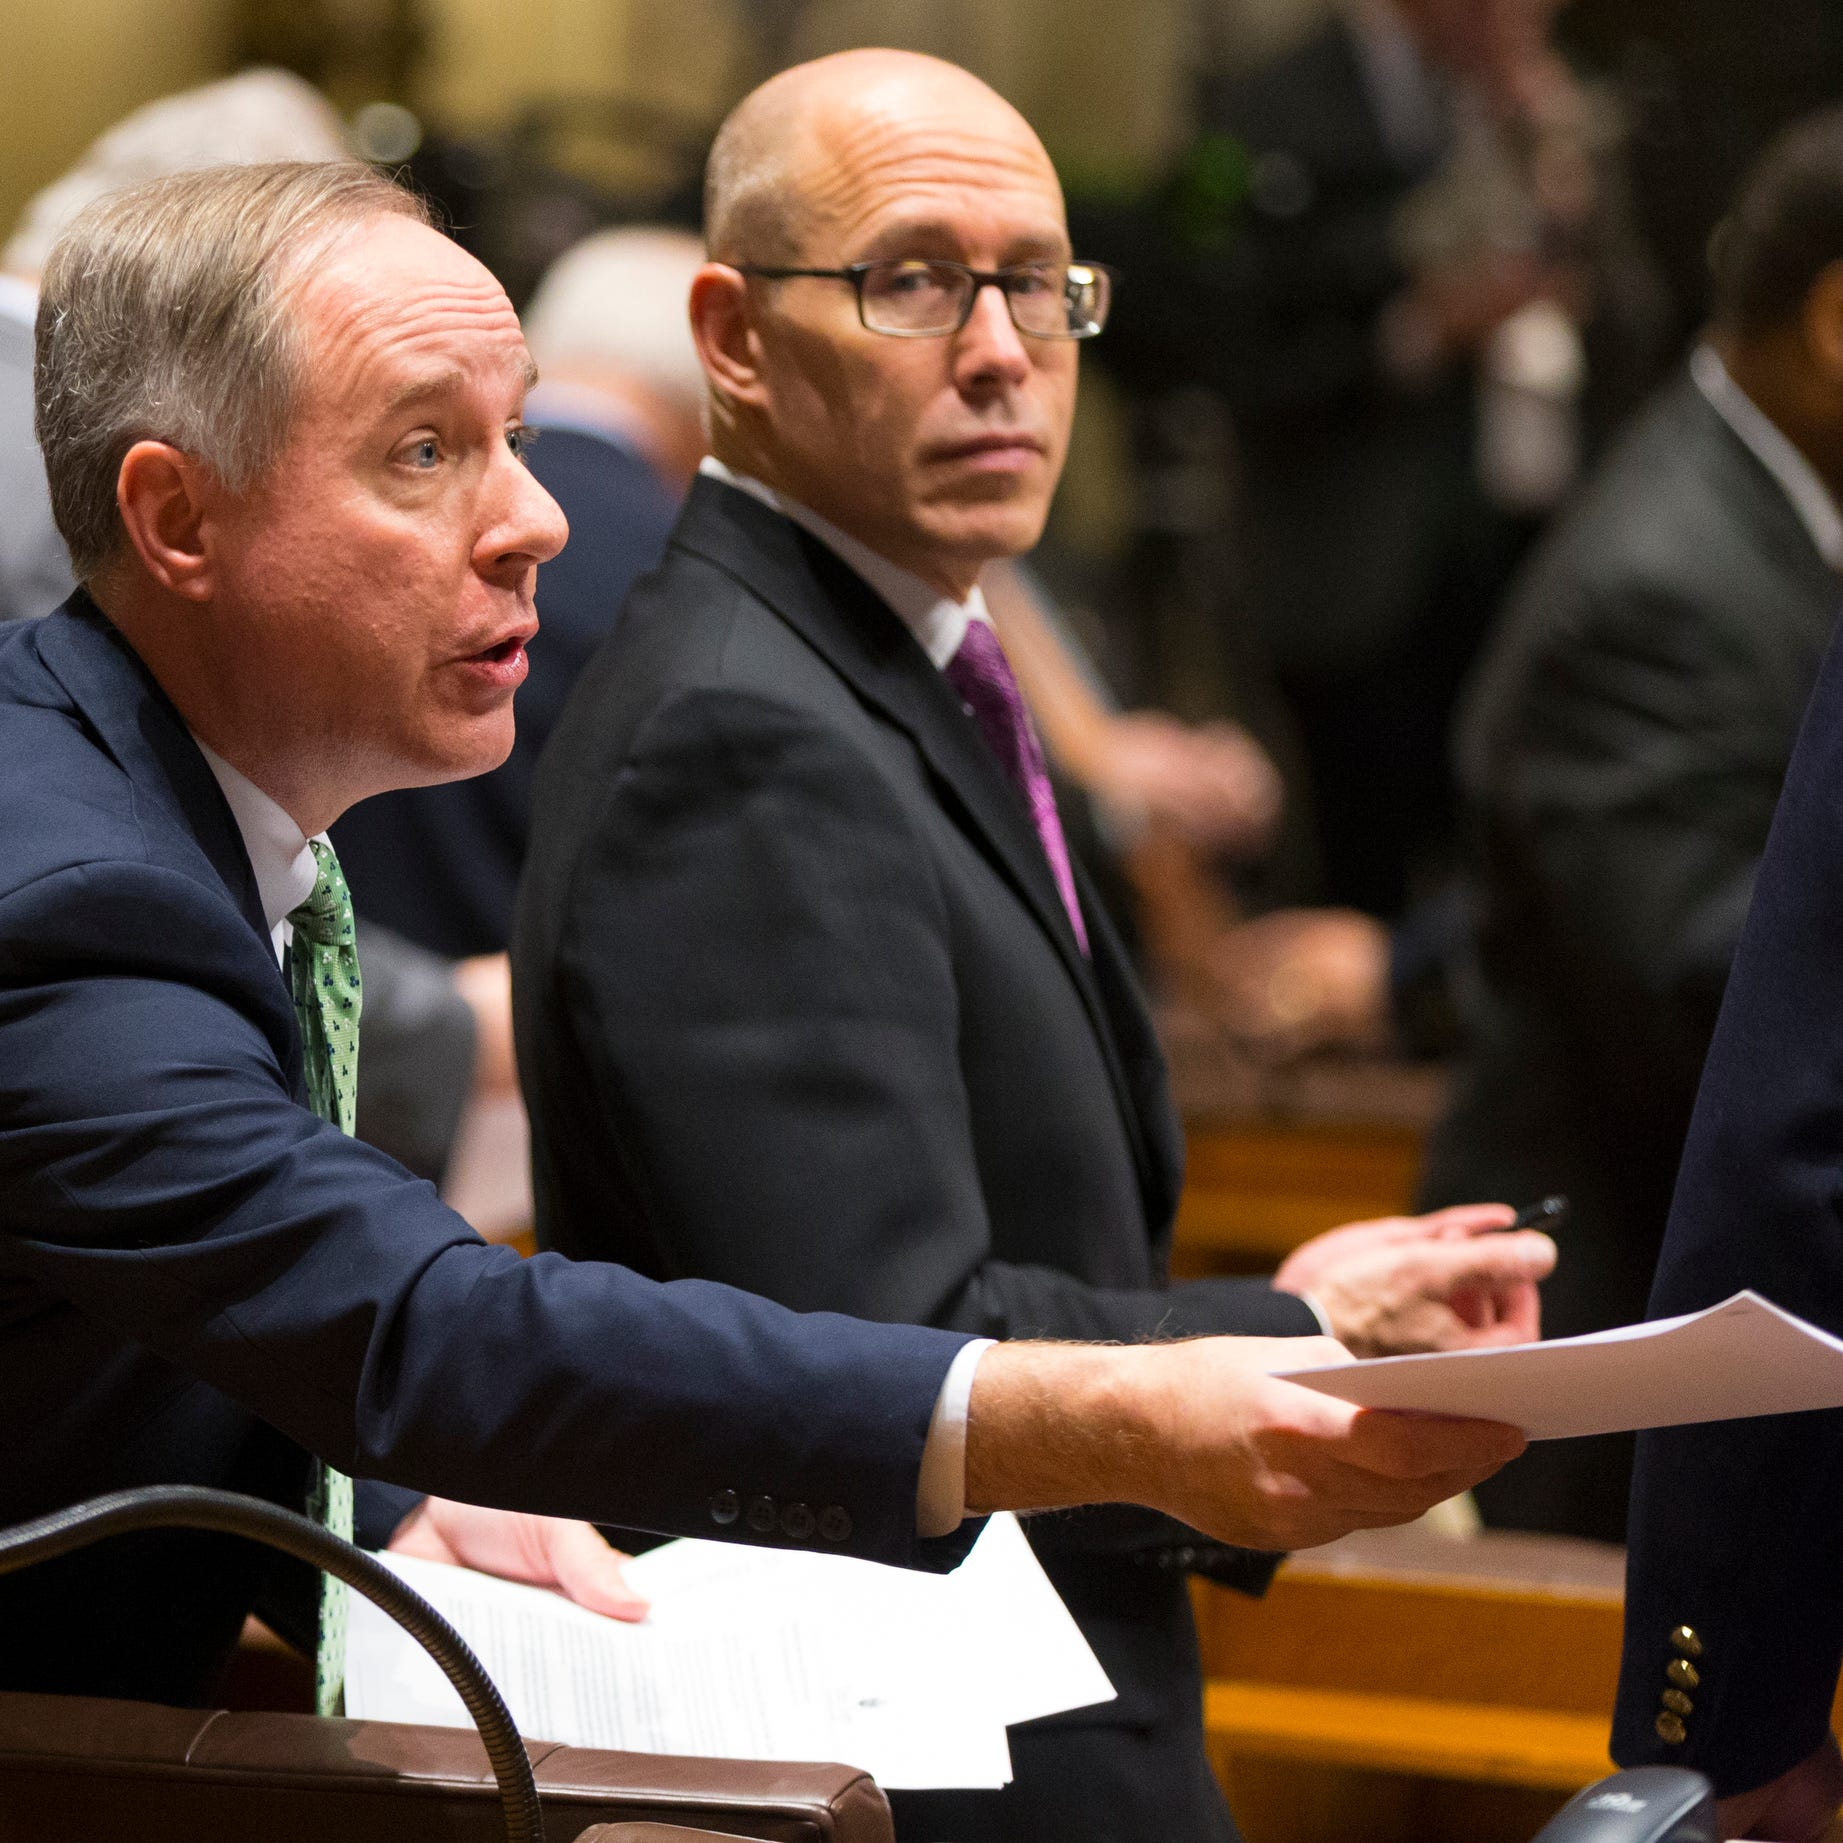 Assembly Speaker Robin Vos hands out copies of Gov. Tony Evers' State of the State address at the Capitol in Madison on Tuesday night.